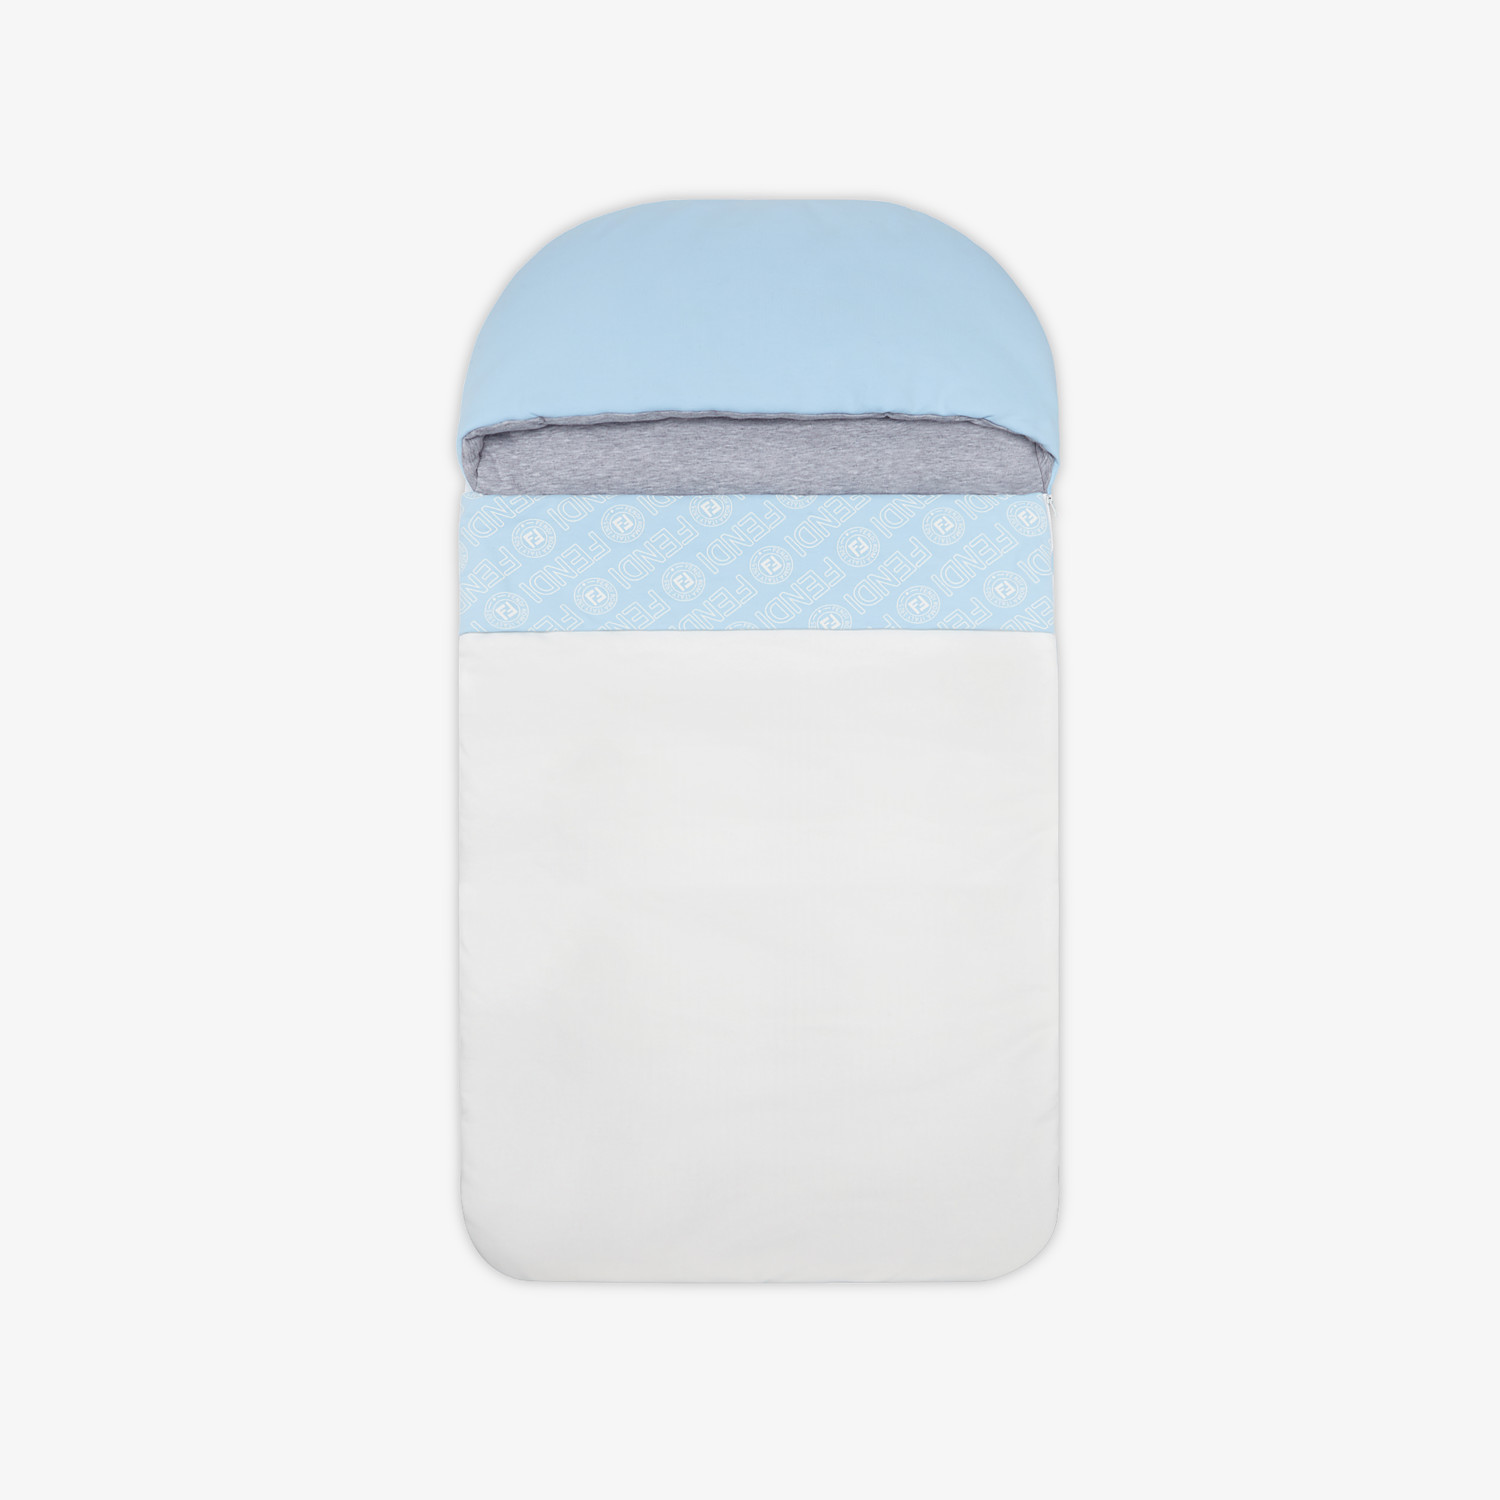 FENDI SLEEPING BAG - Light blue cotton sleeping bag - view 1 detail